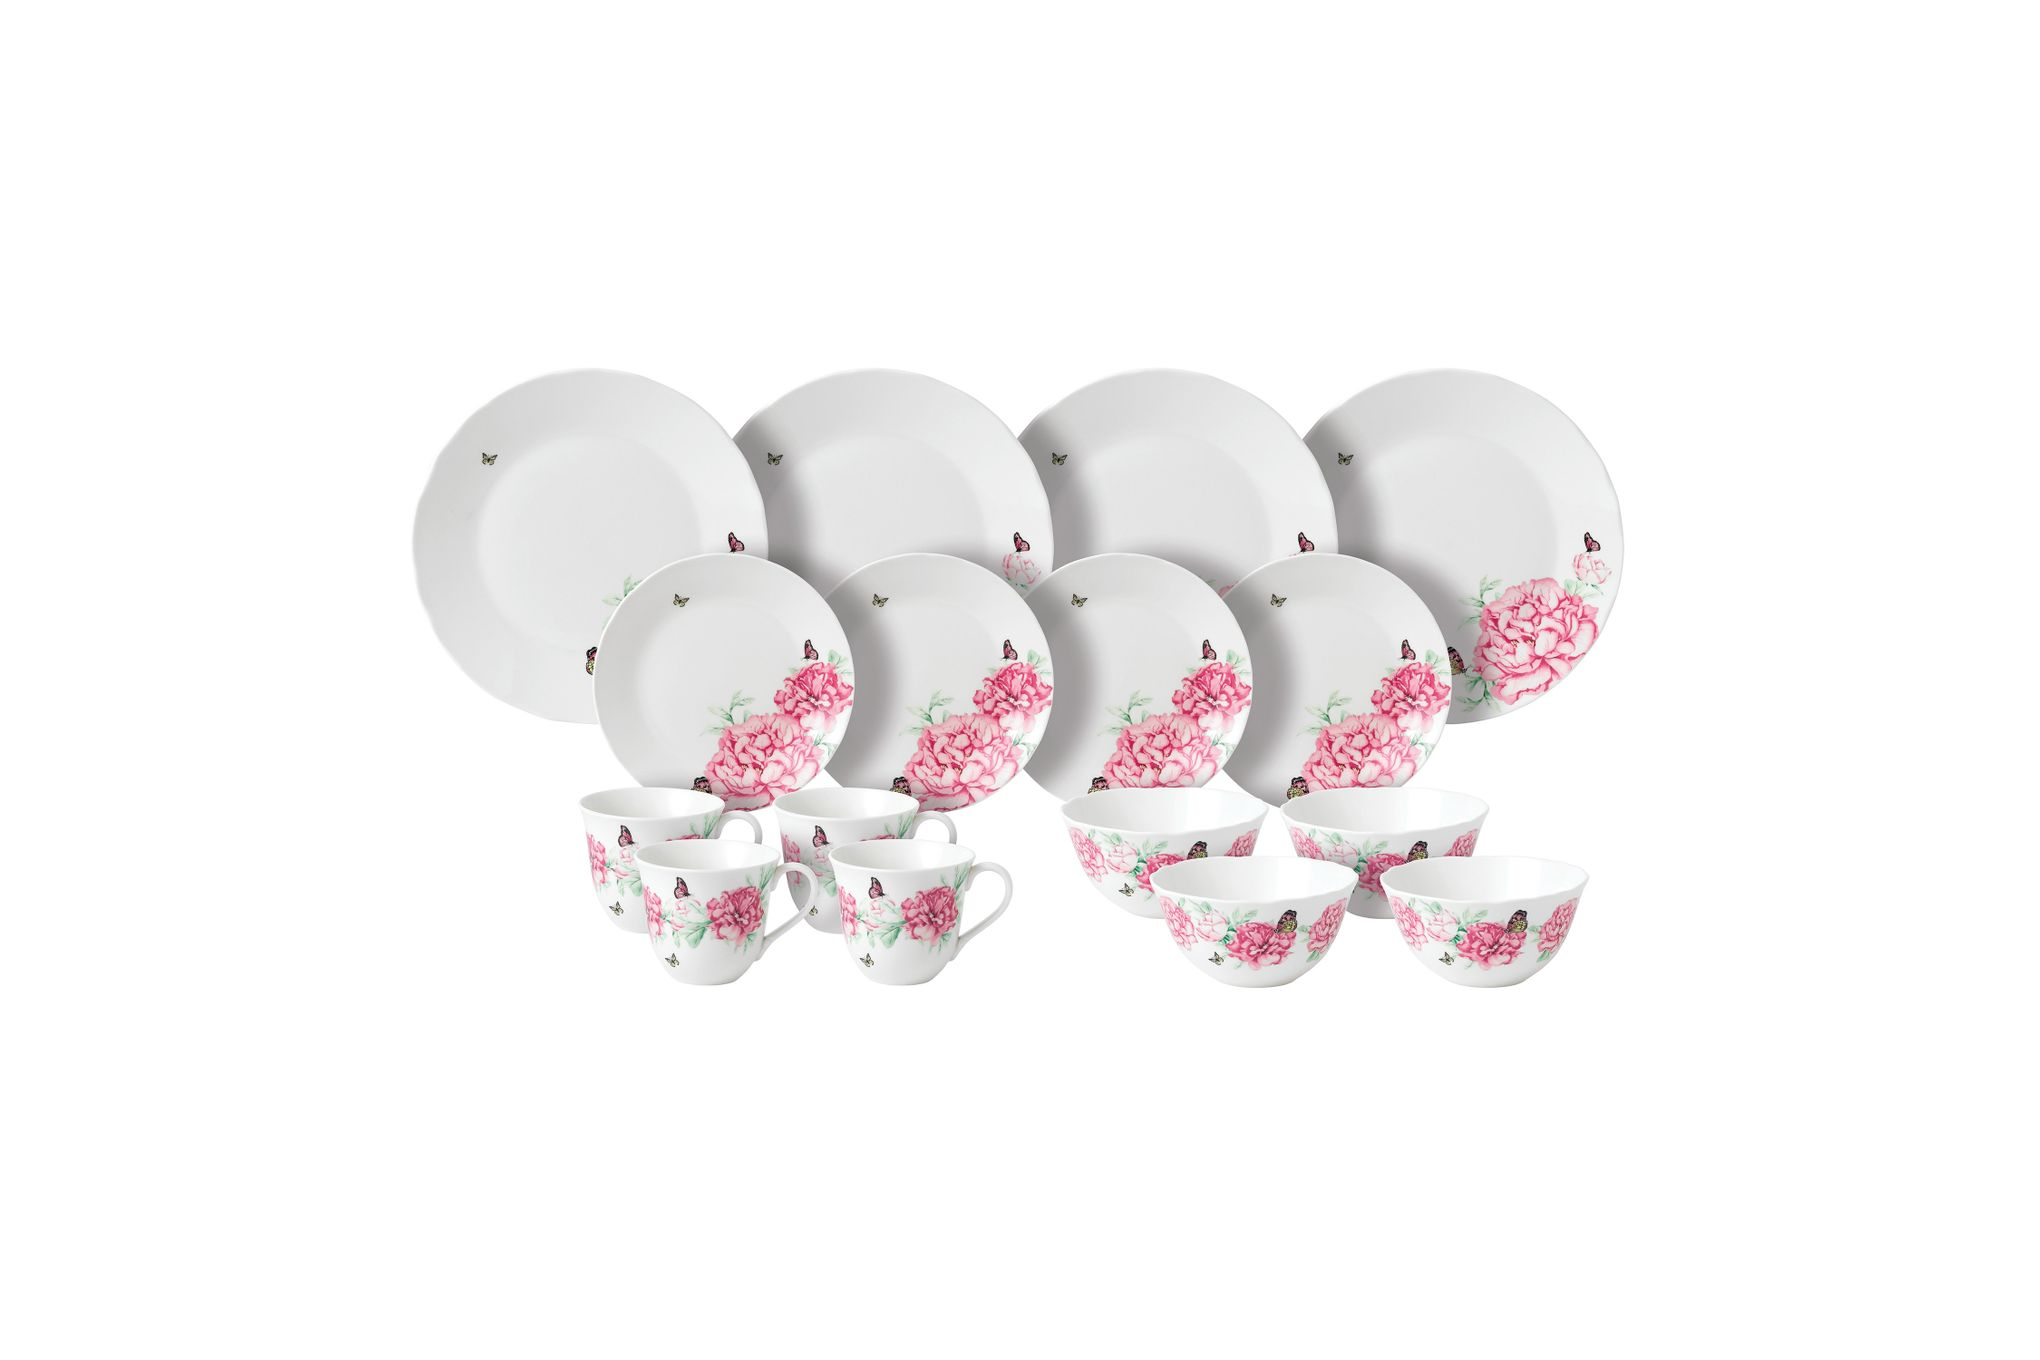 Miranda Kerr for Royal Albert Everyday Friendship 16 Piece Set White - 4 x Plate 27cm, Plate 20cm, Cereal Bowl, Mug thumb 1